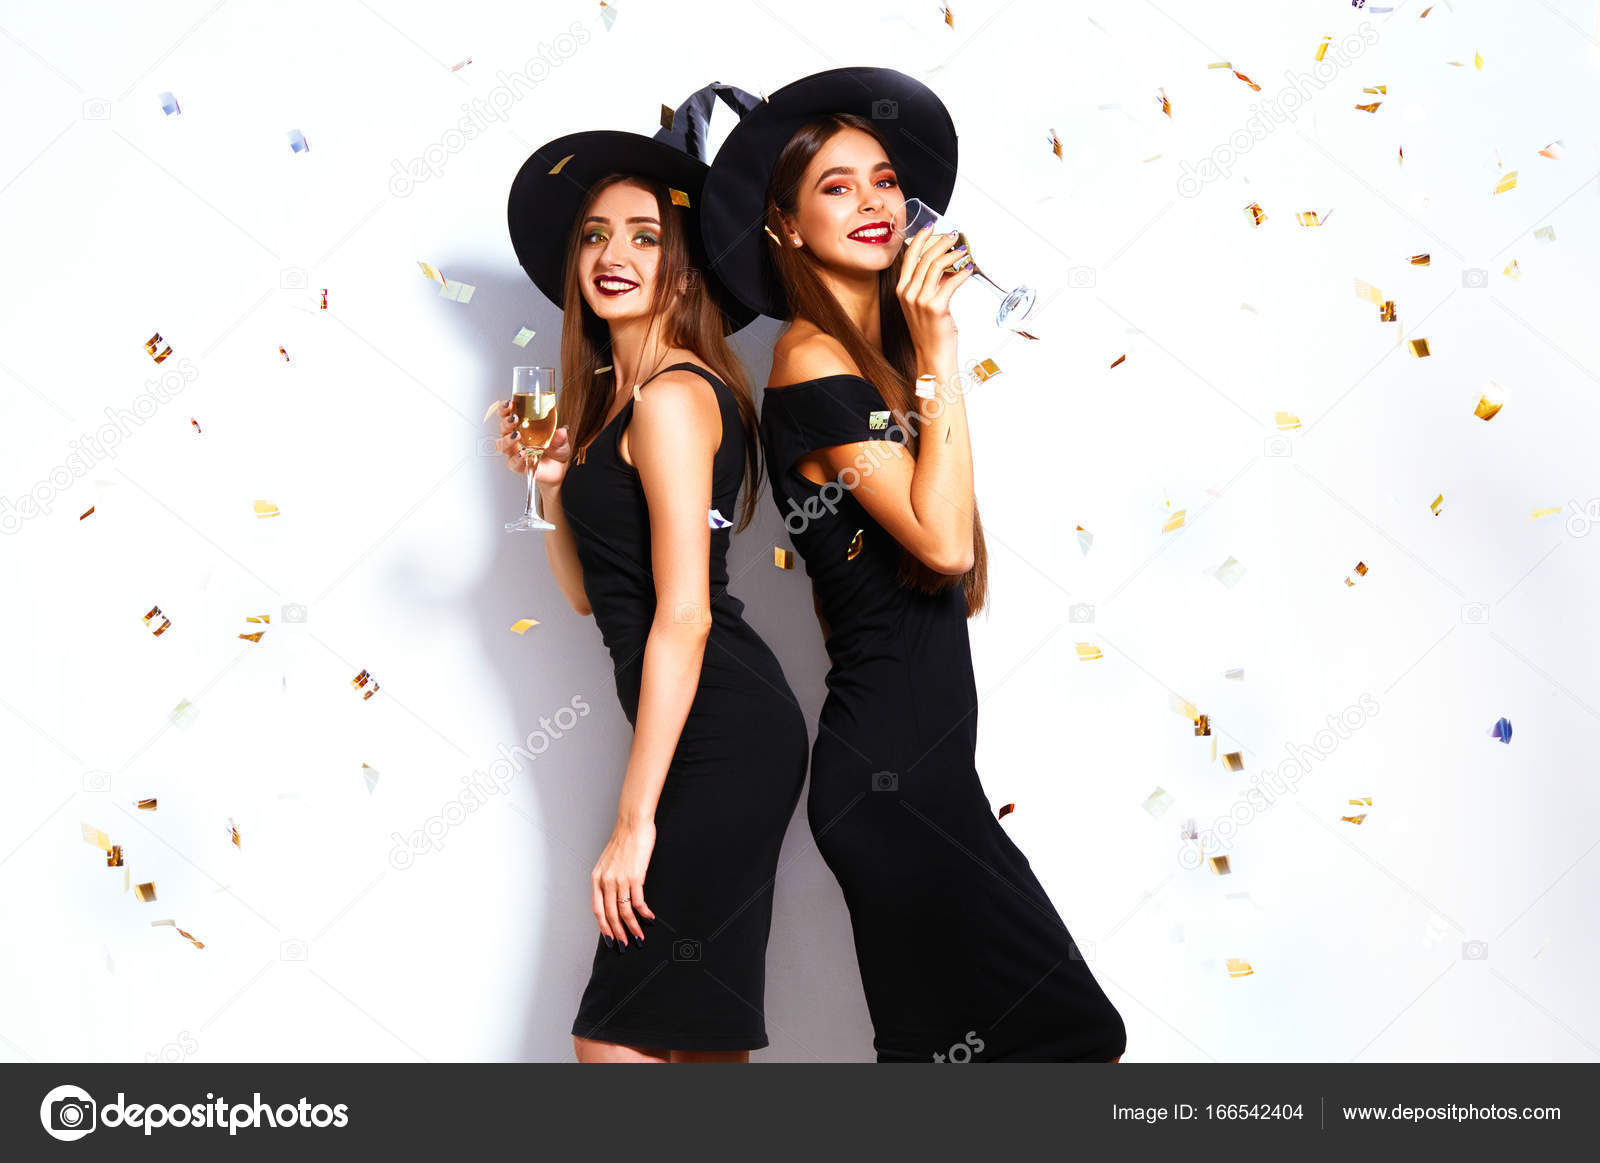 portrait of two happy young women in black witch halloween costumes on party over white background